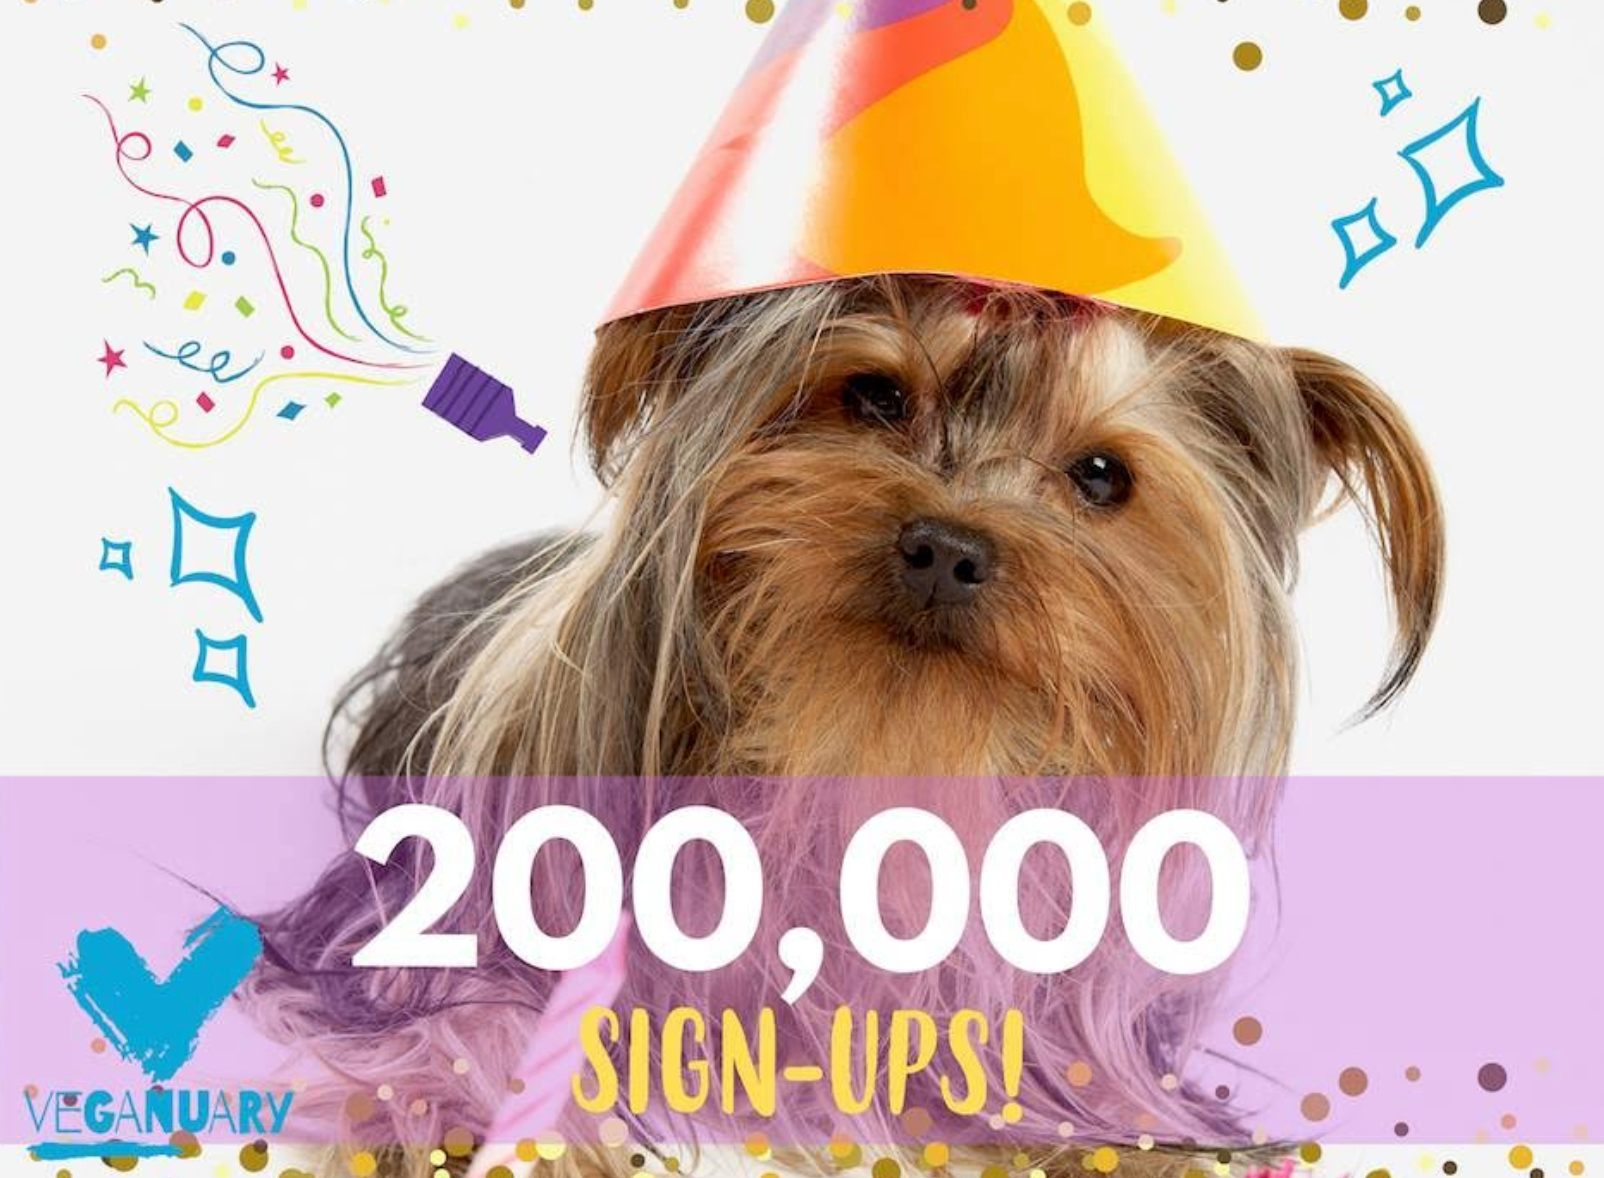 Veganuary hits 200,000 sign-ups